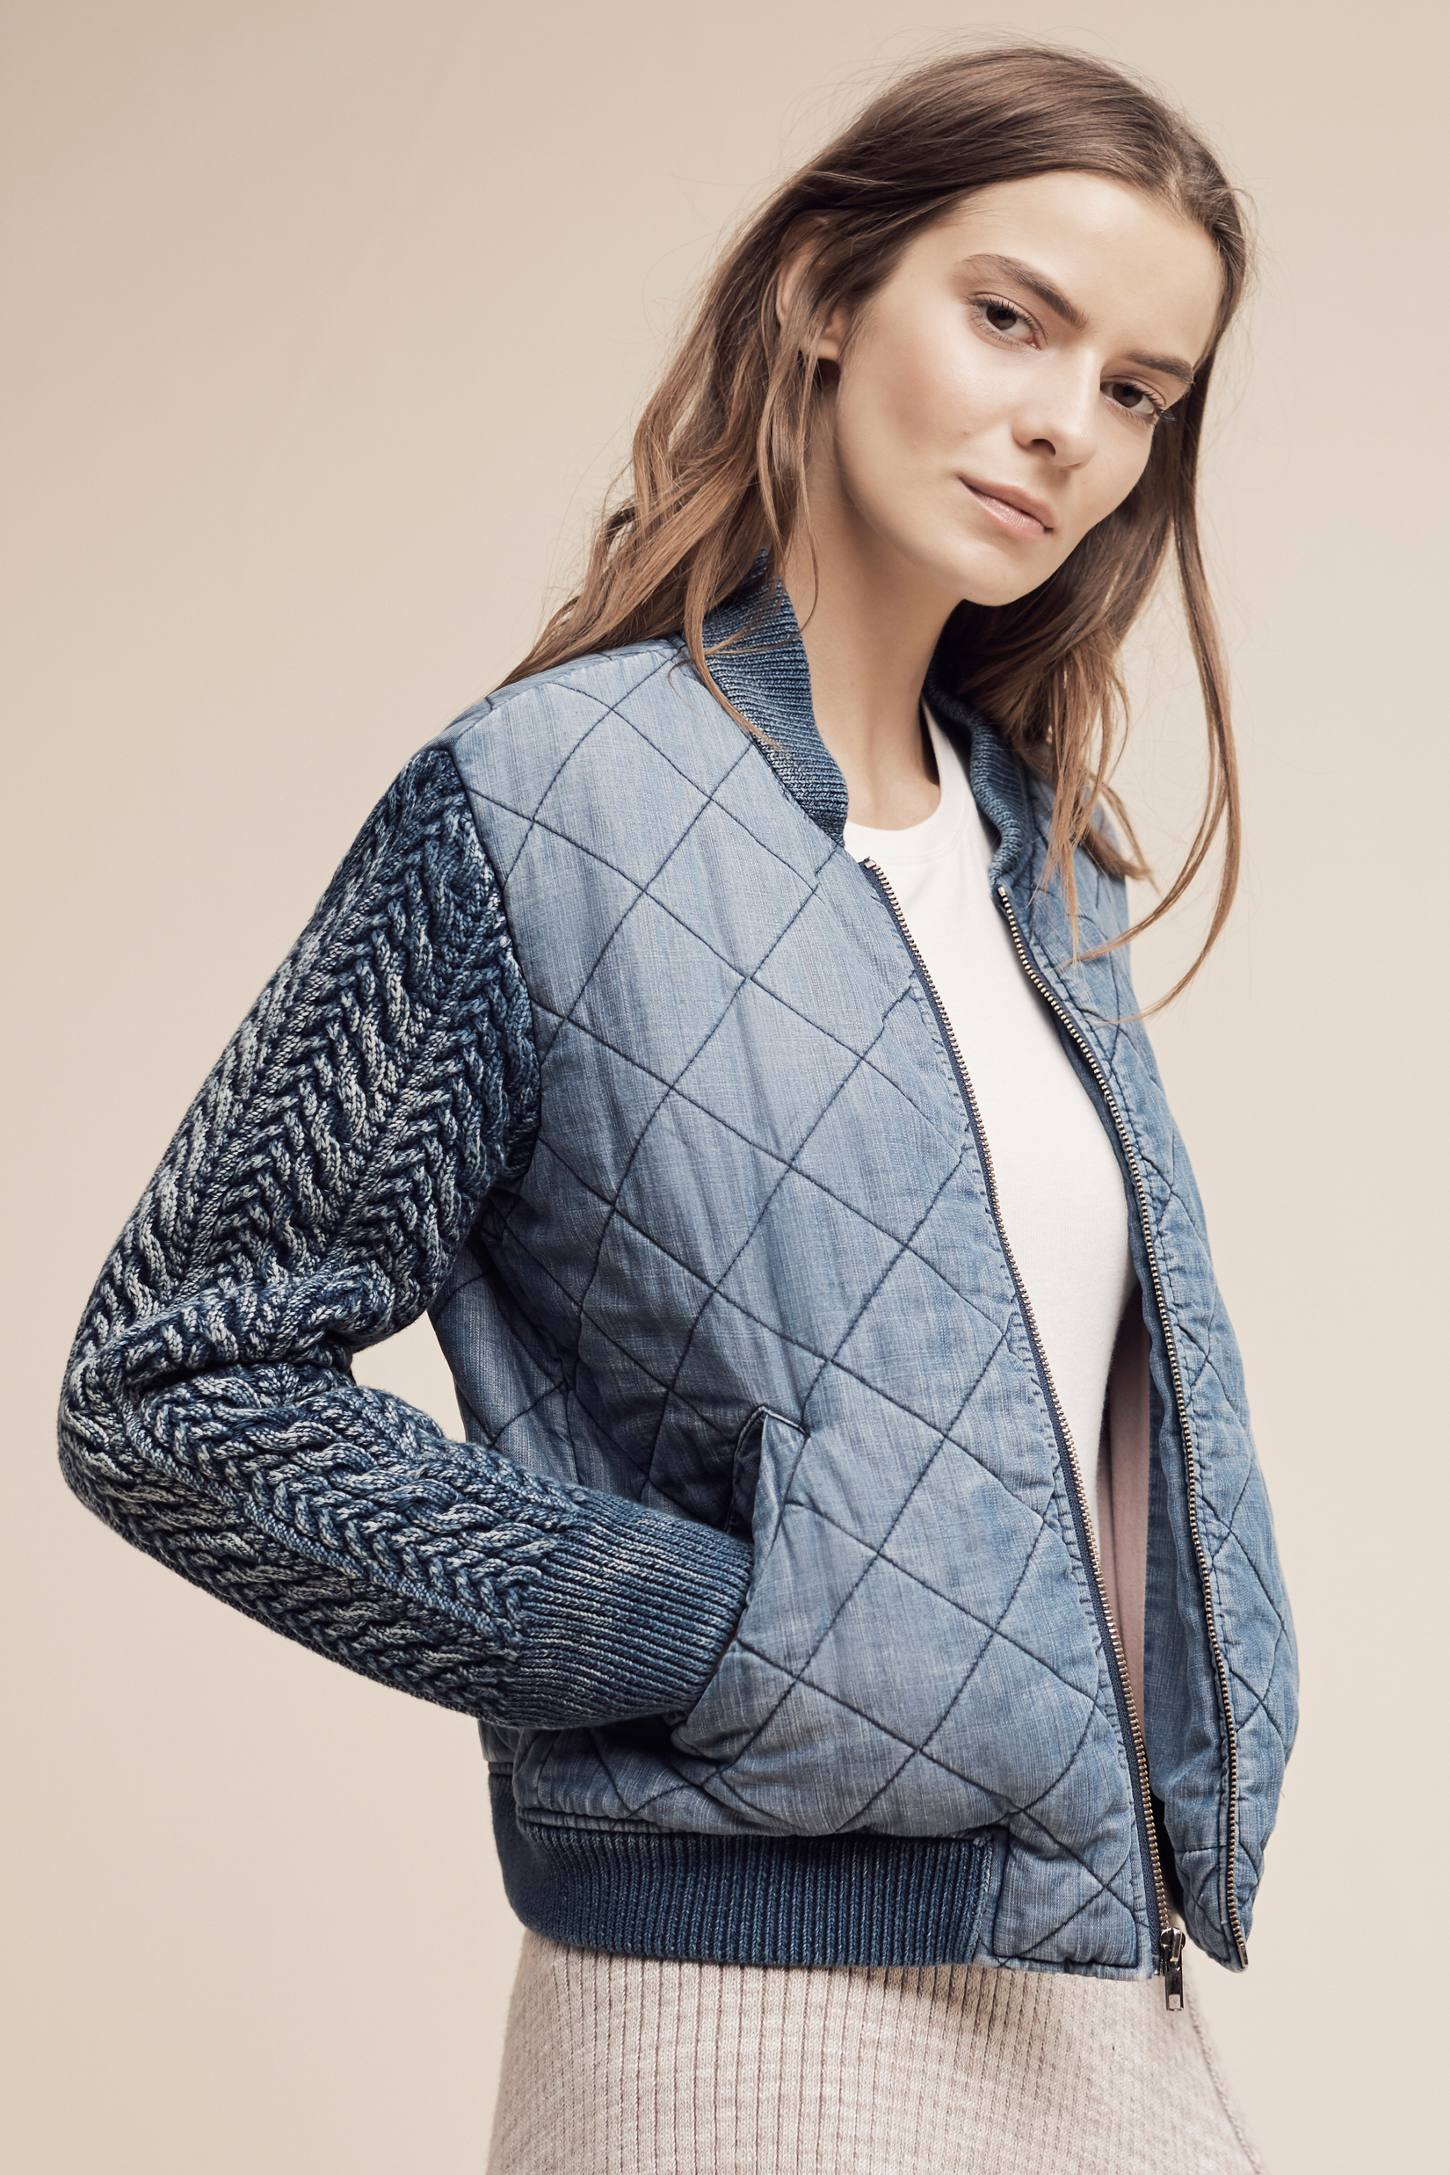 Slide View: 1: Quilted Chambray Bomber Jacket, Blue